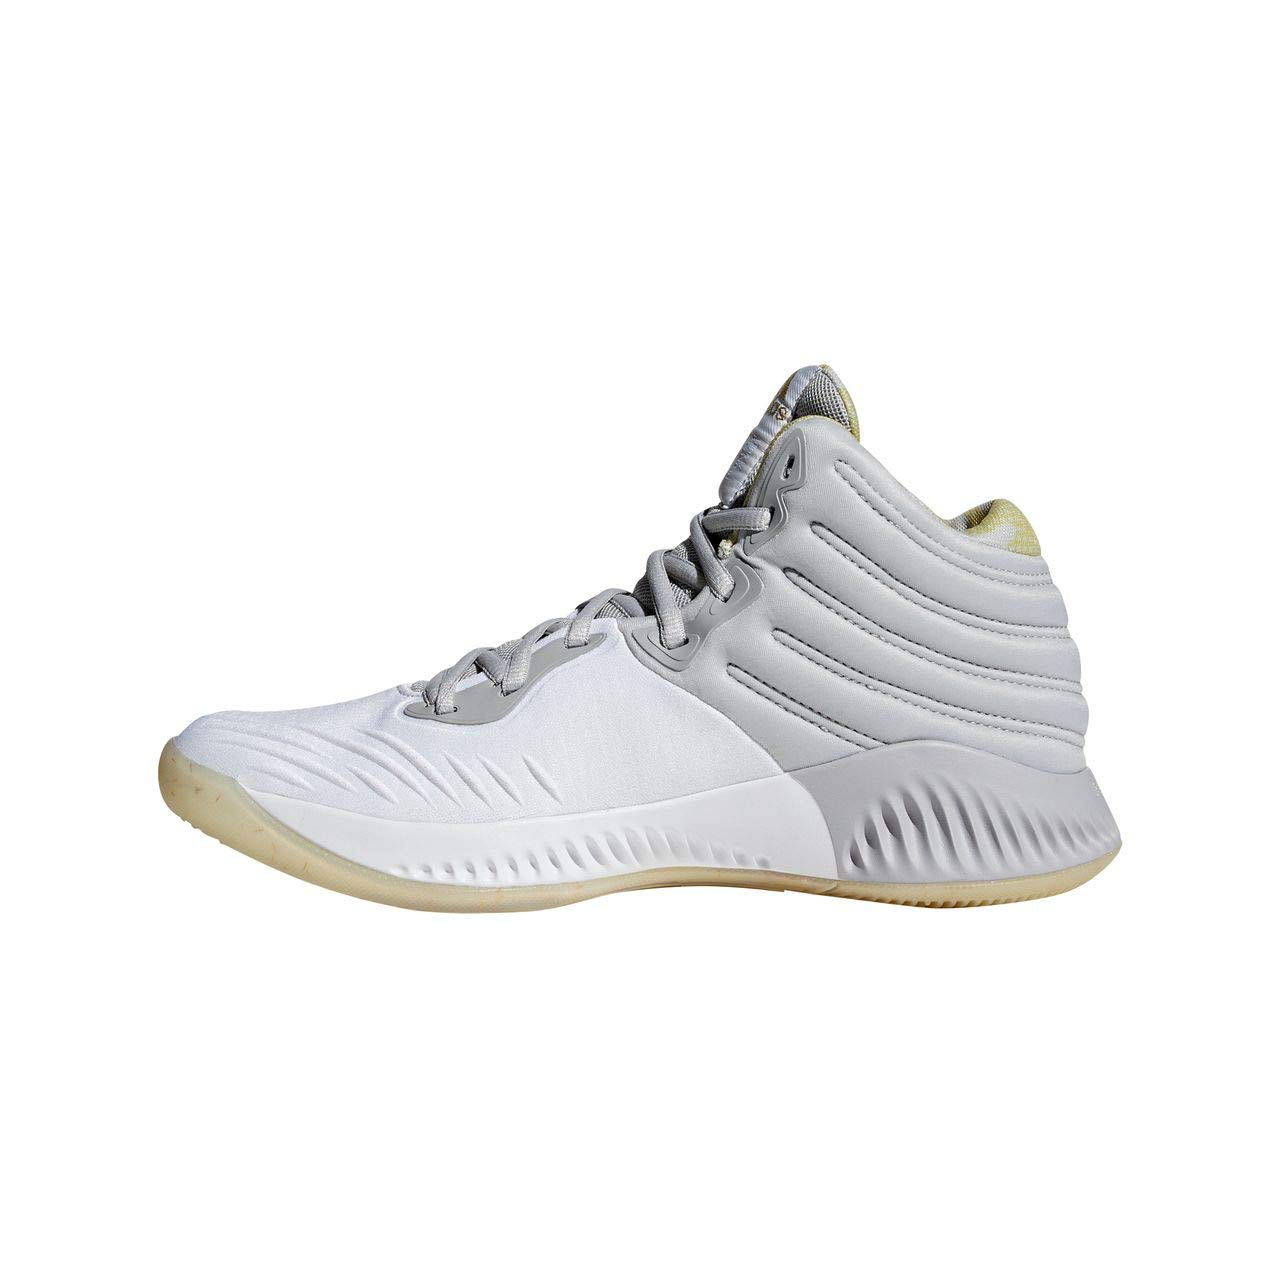 Adidas Mad Bounce Chaussures 2018, Chaussures Bounce de Basketball Homme 46 2/3 EU|Blanc (Ftwwht/Gold Mt/Gretwo Ftwwht/Gold Mt/Gretwo) 5eb675